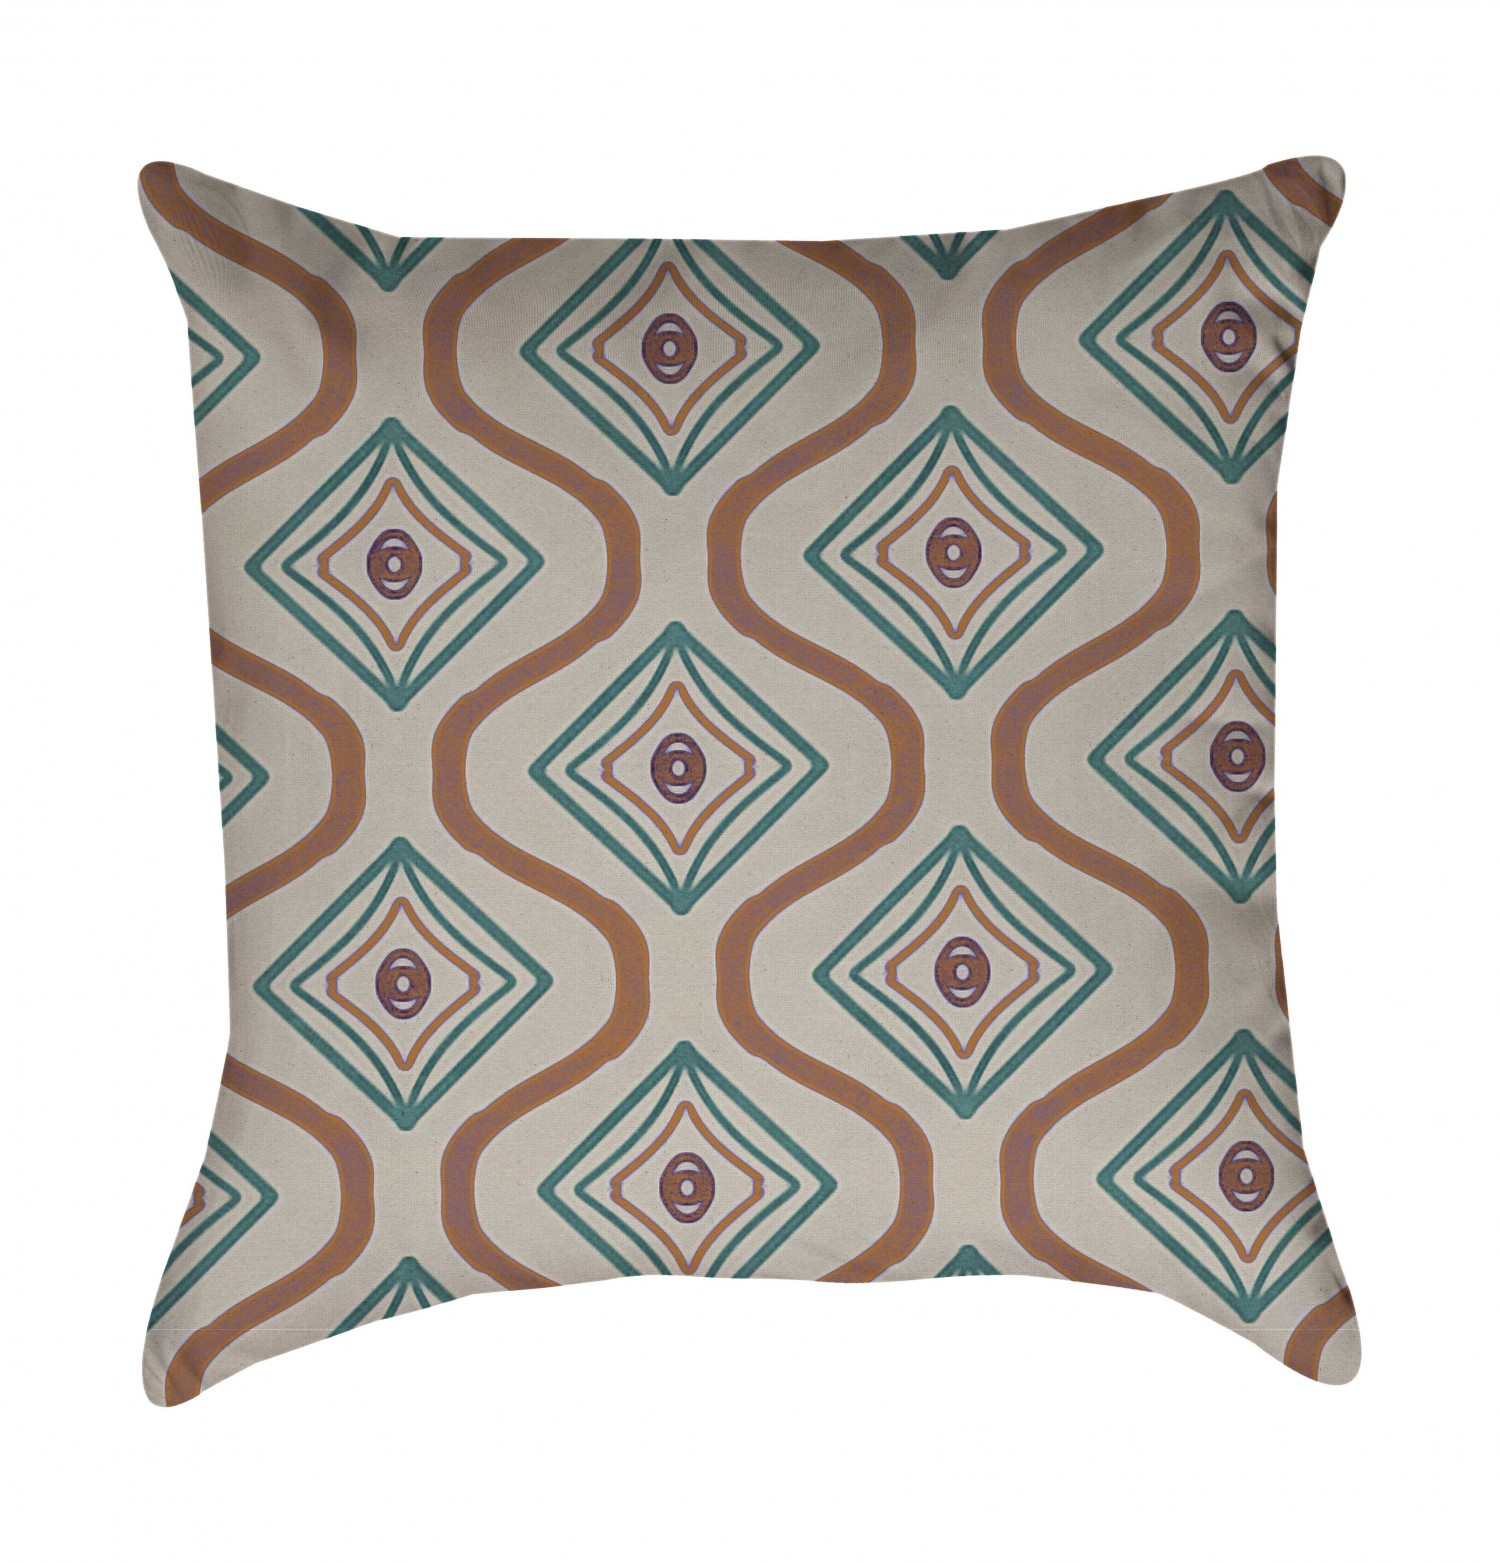 pillow cover graycoral2 mintcoral2